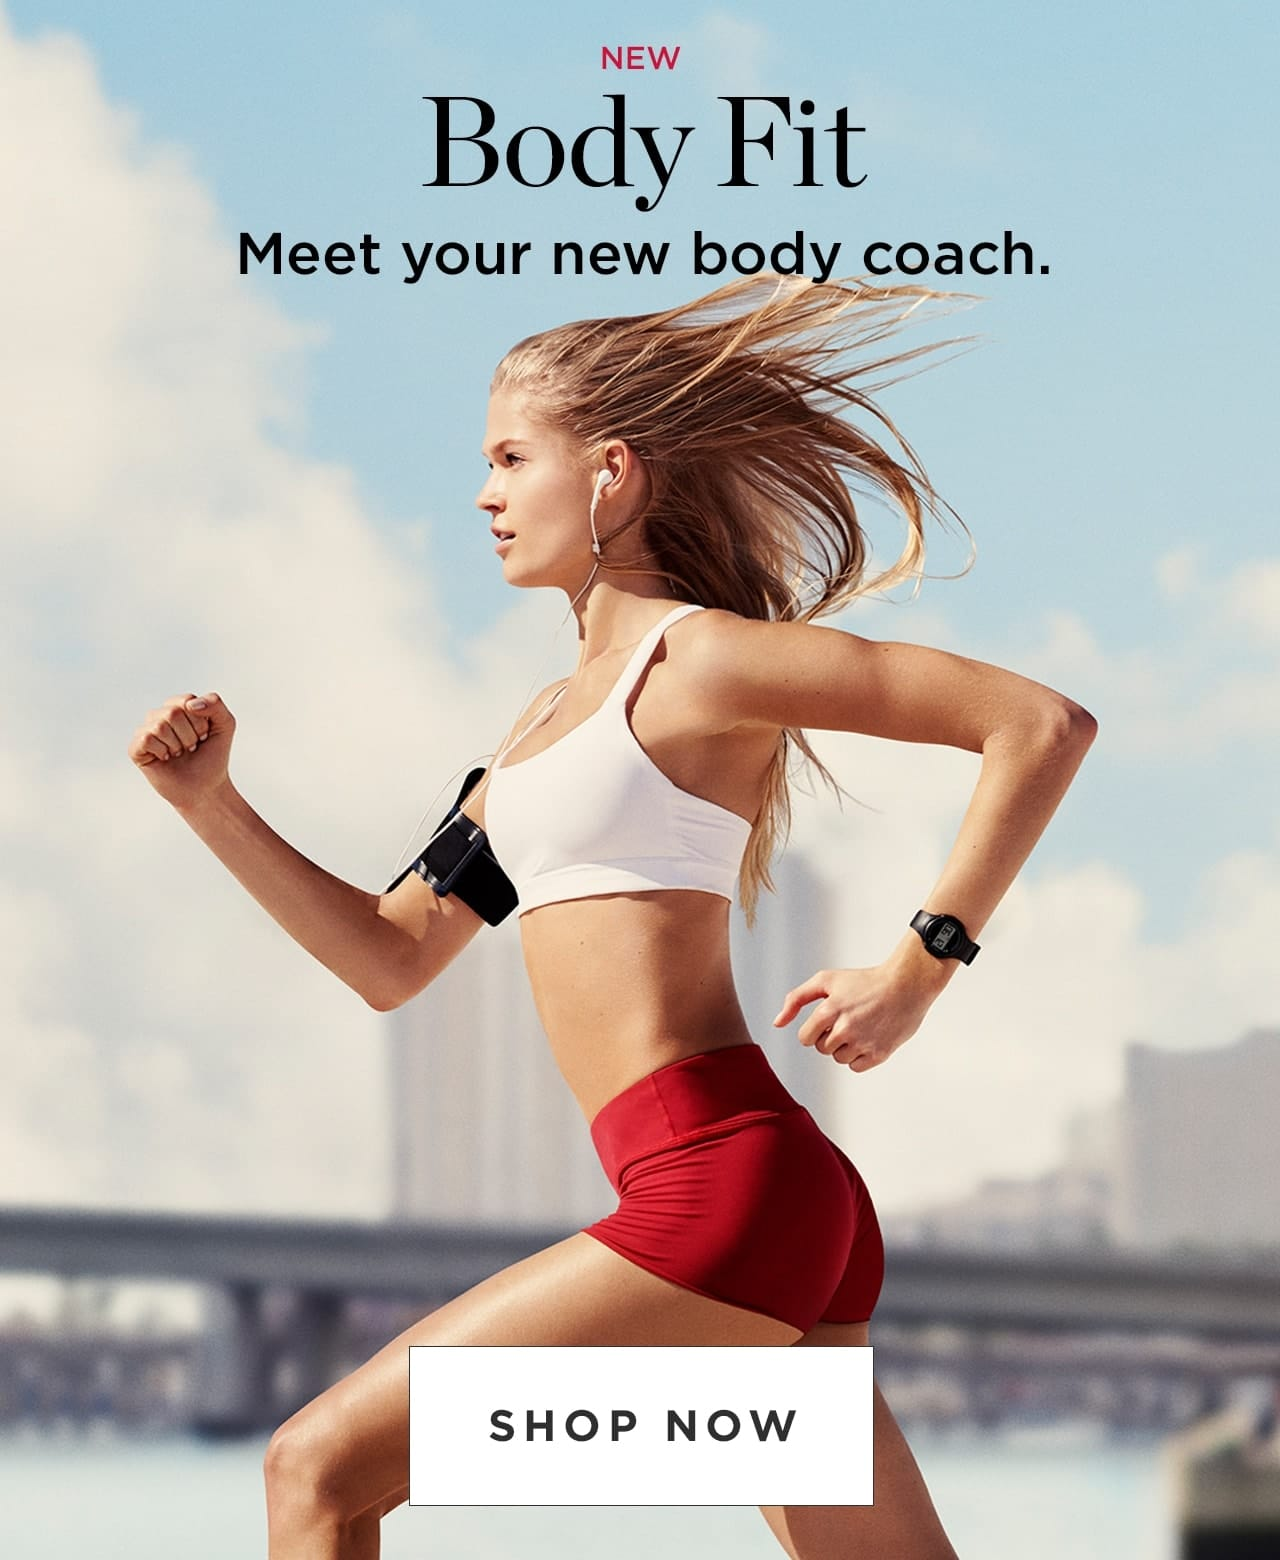 NEW Body Fit - Meet your new body coach